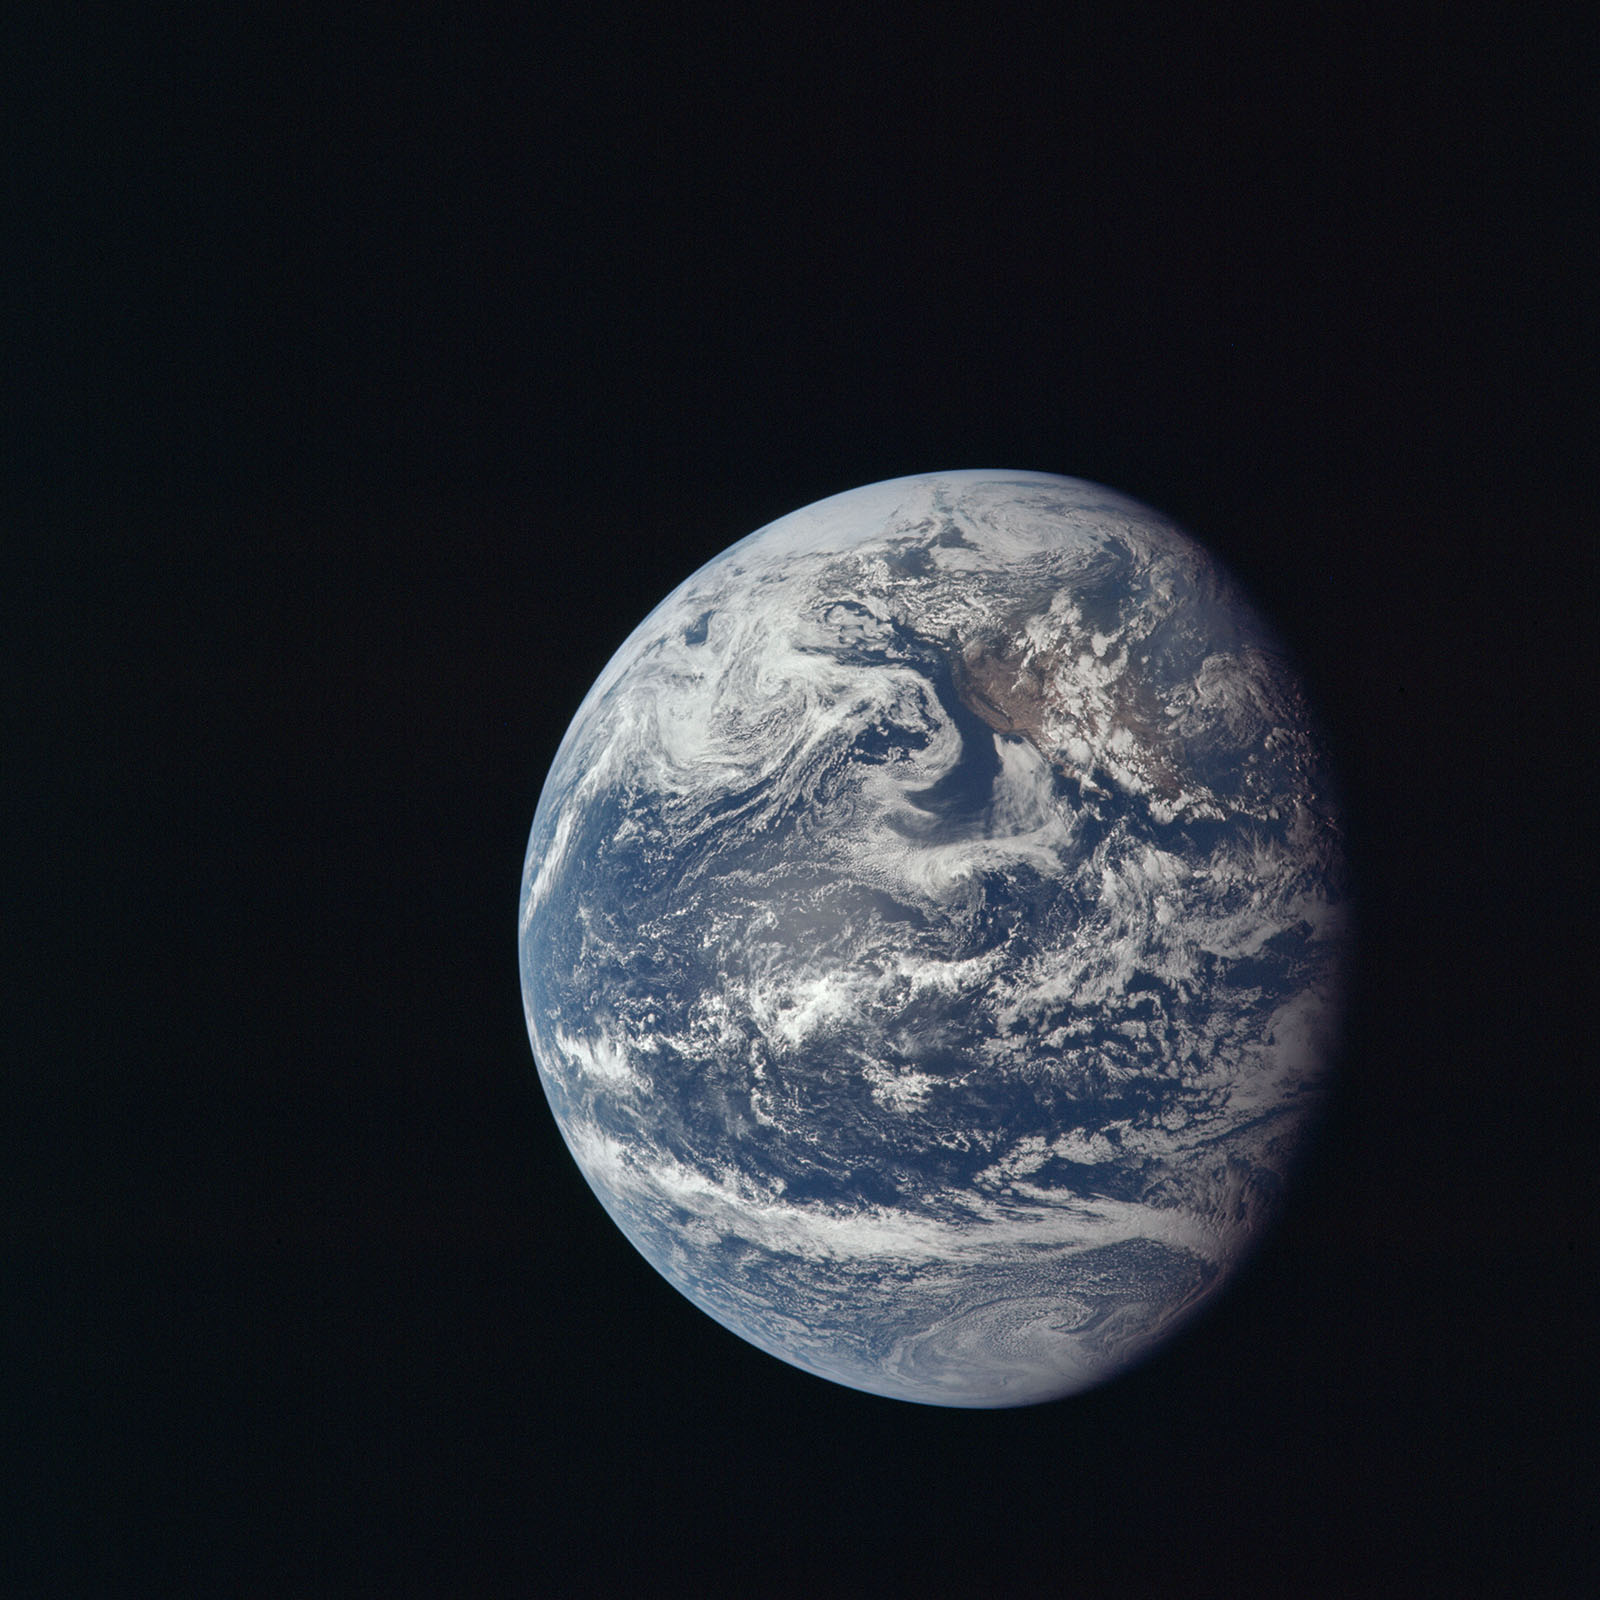 View of Earth taken by Apollo 11 crew members. Image courtesy of NASA.